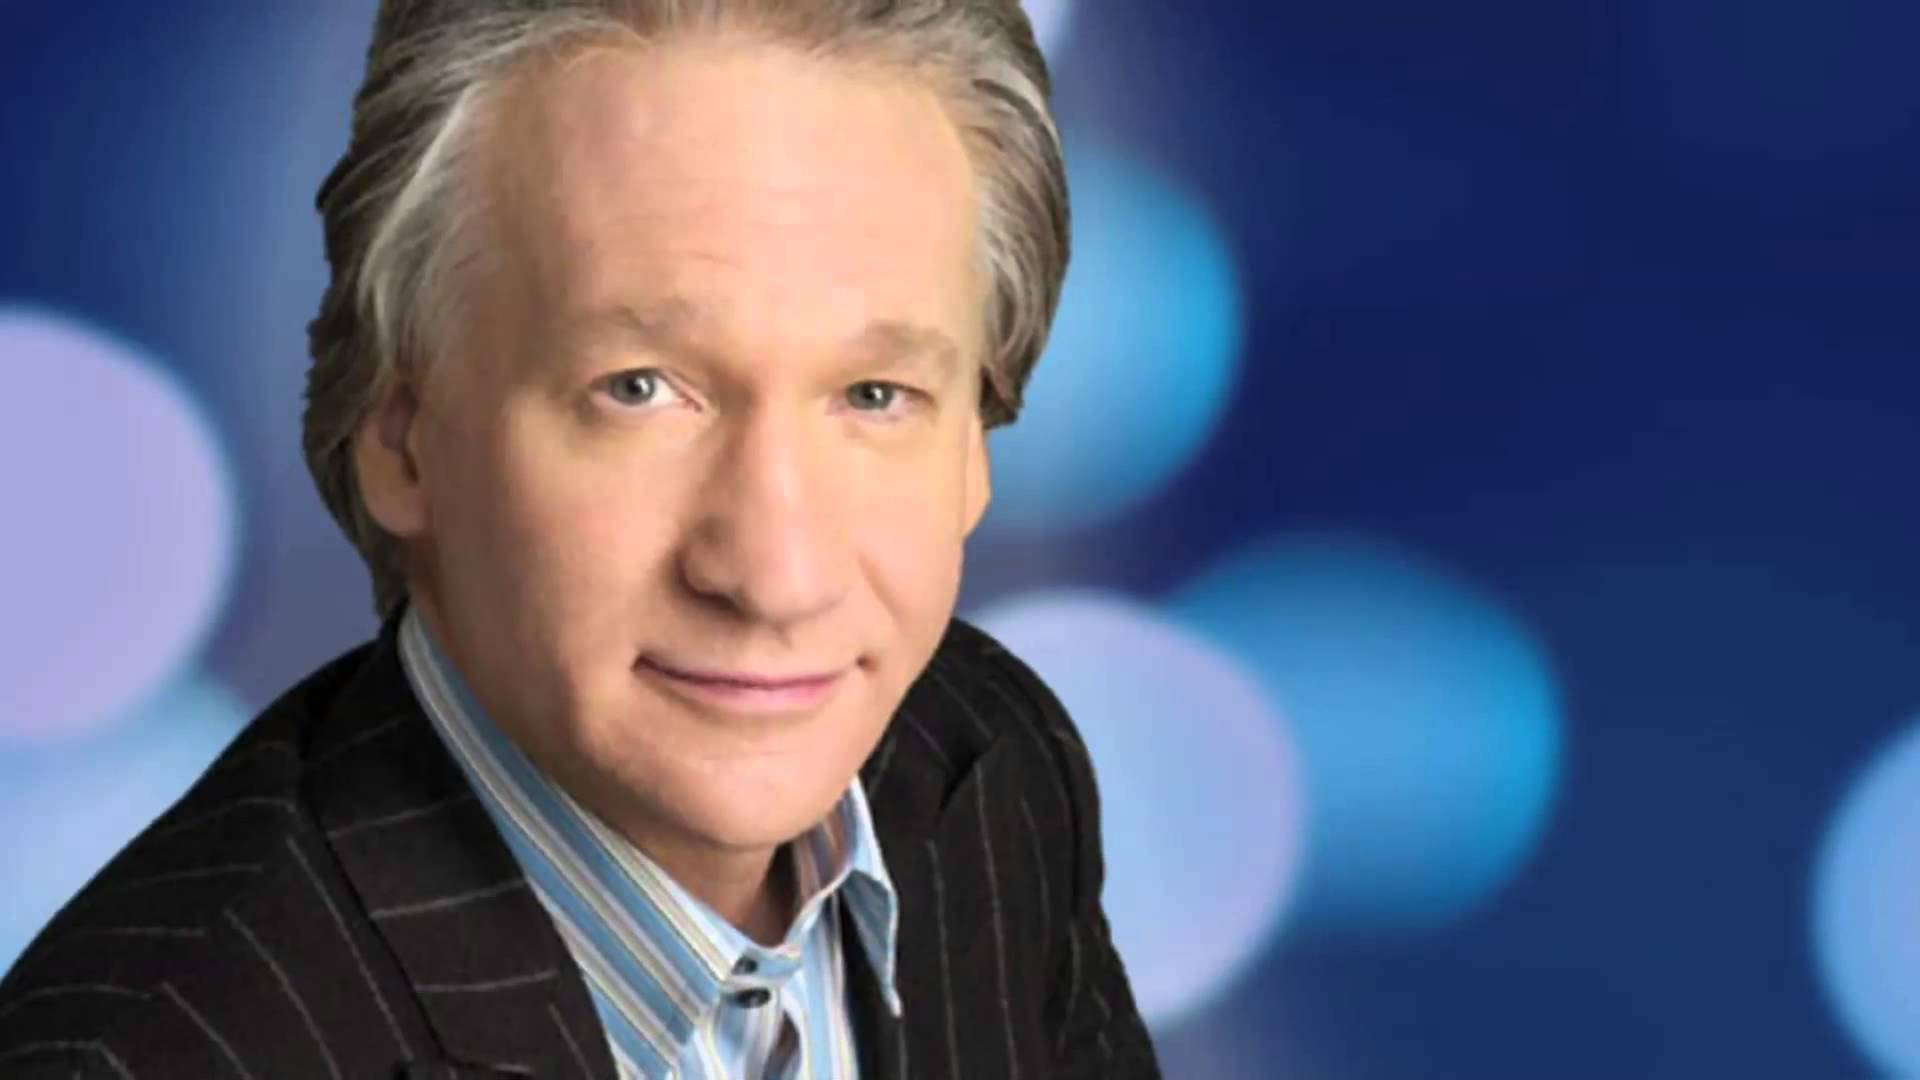 Bill Maher Blazes Weed Joint on TV to Make a Point About Legalization